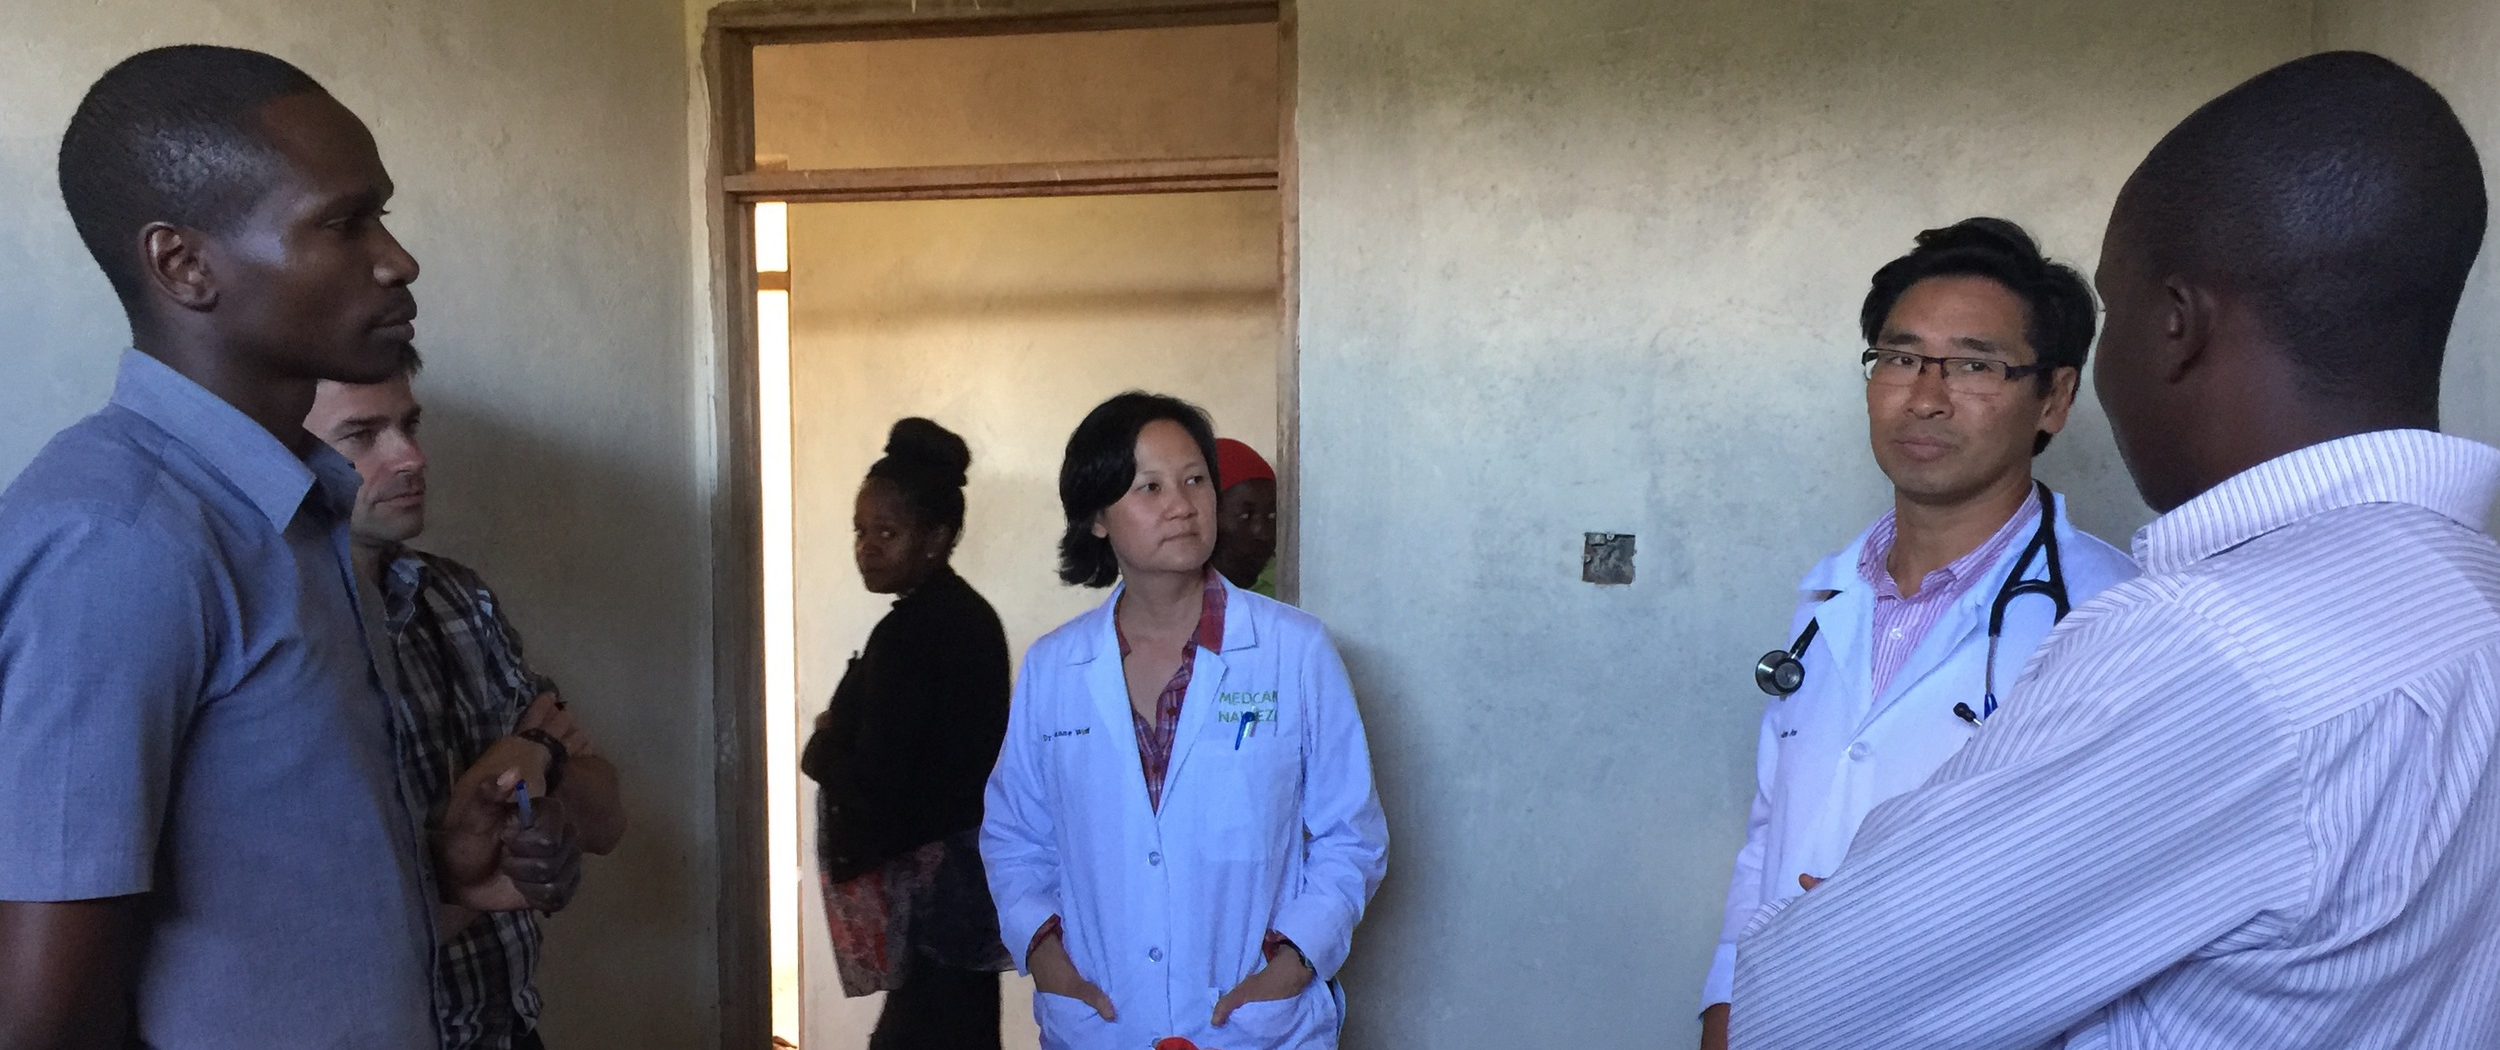 Dr. Michael, Dr. Sue and Dr. James consulting with each other and the Lewa staff to diagnose a patient.